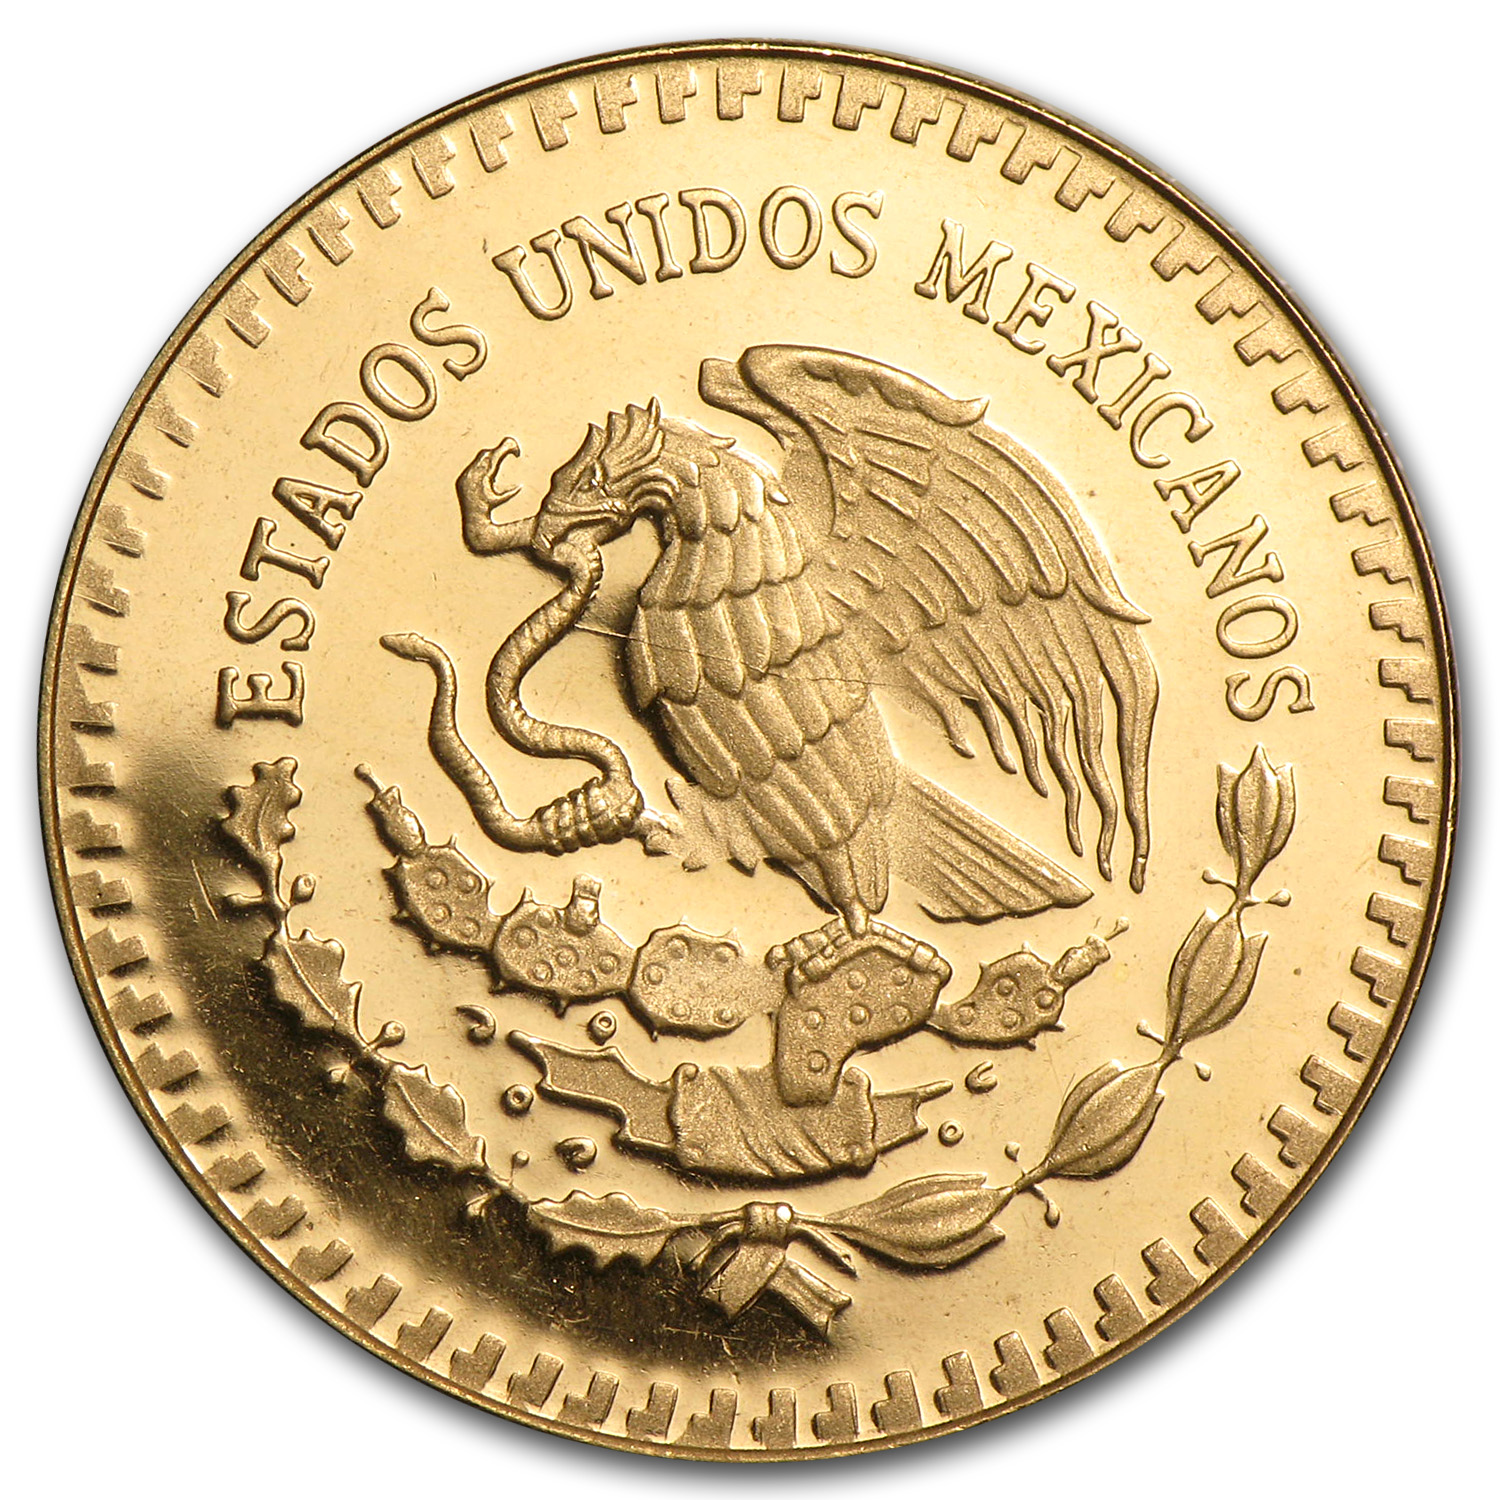 1985 or 1986 Mexico Gold 250 Pesos Proof (World Cup)